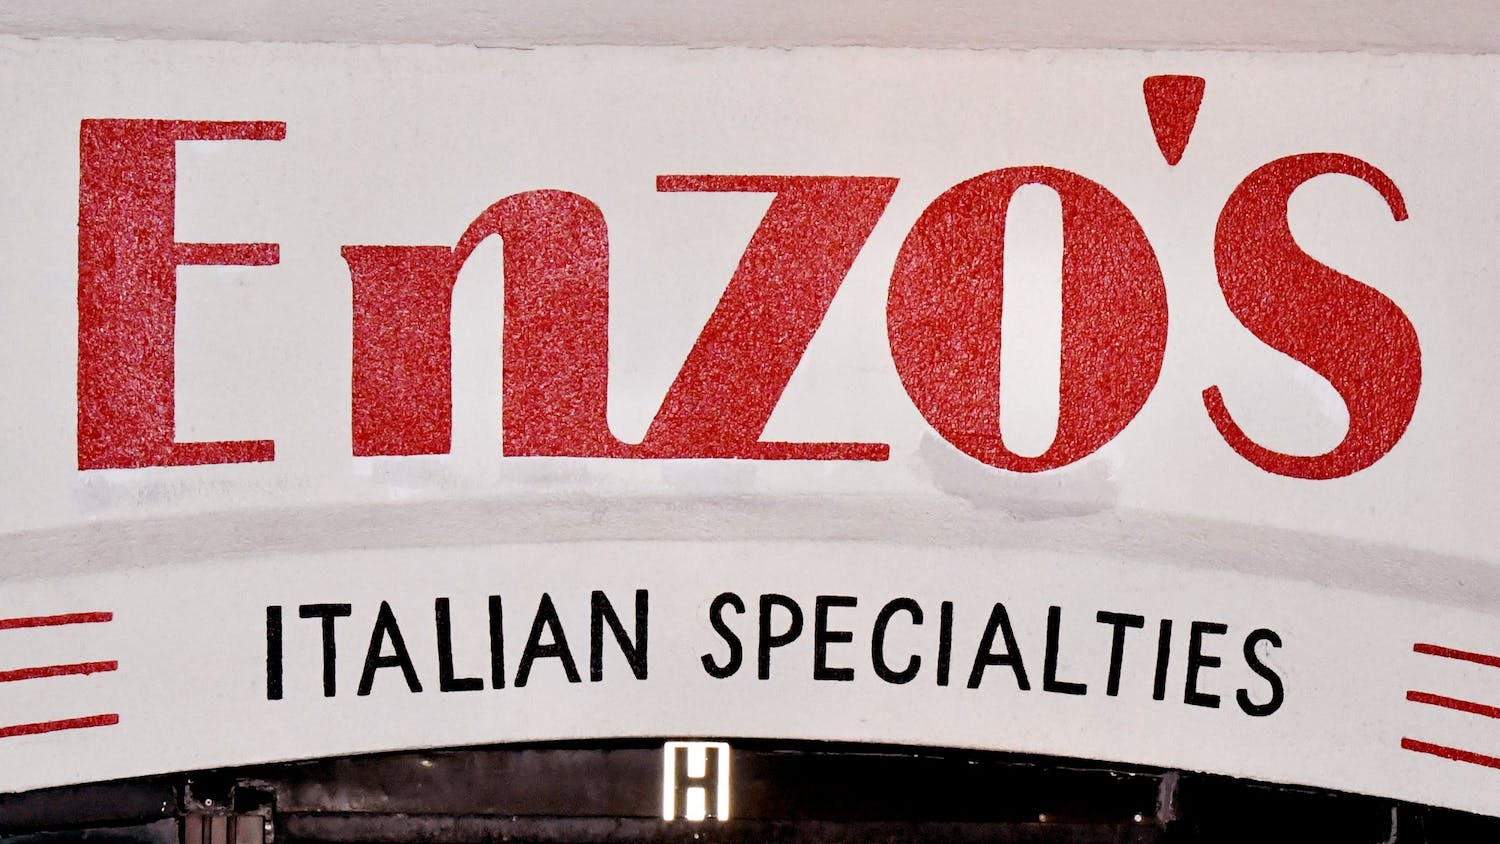 Enzo's Delicatessen is an Italian deli located in Five Points